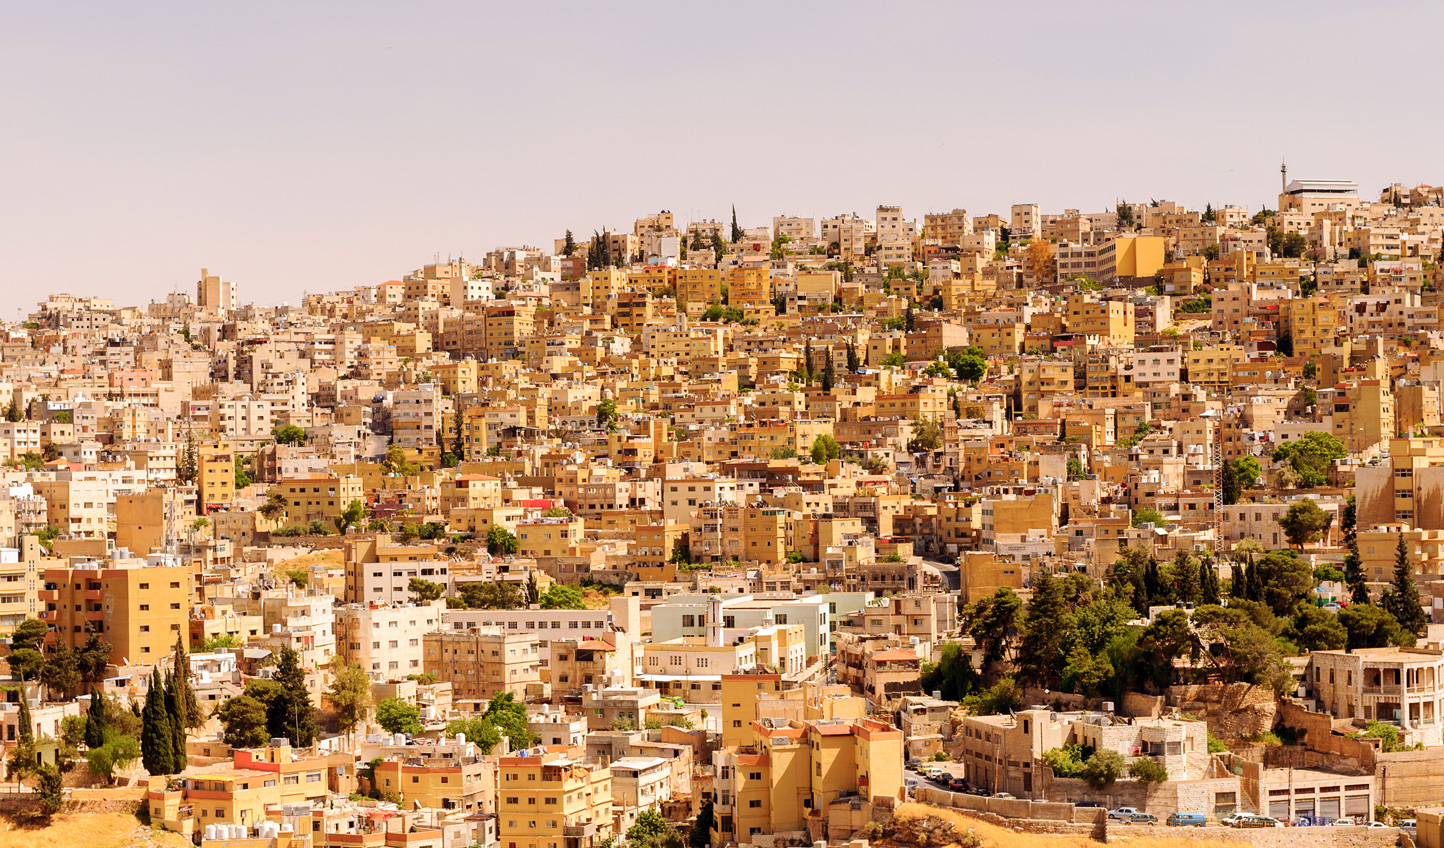 Finish up your trip on the city streets of Amman